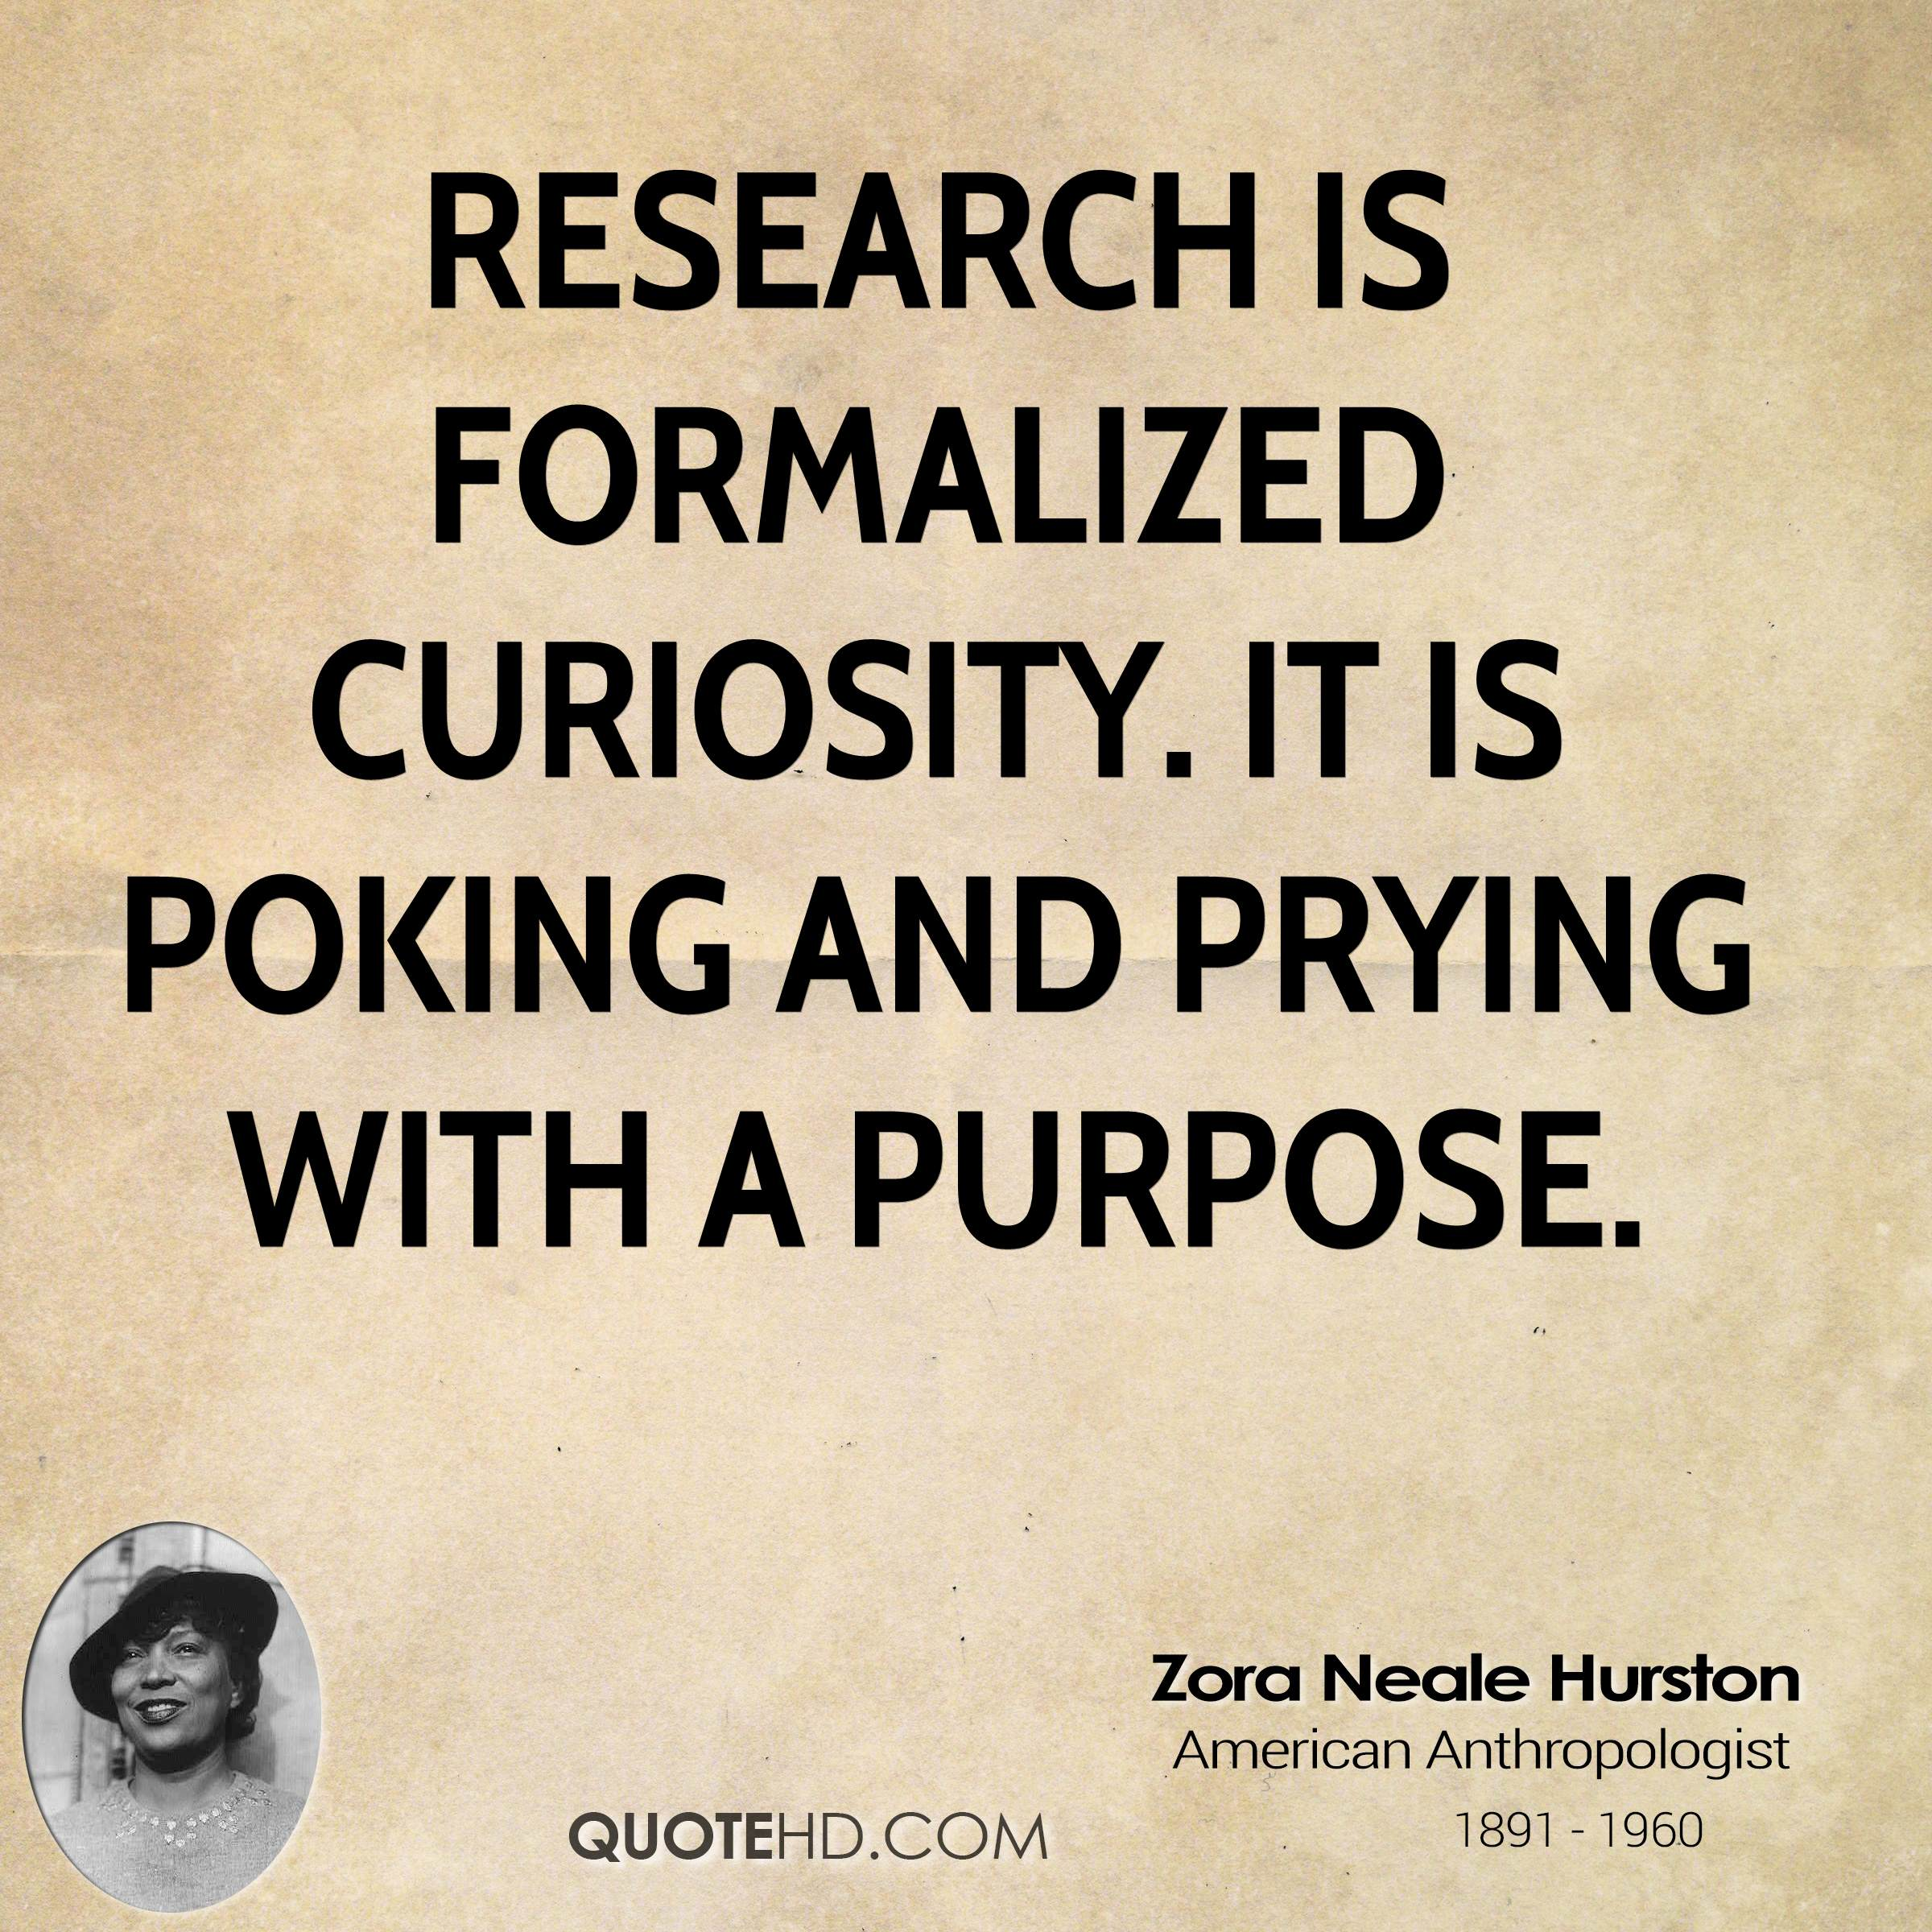 Quotes On Research Best Zora Neale Hurston Quotes  Quotehd